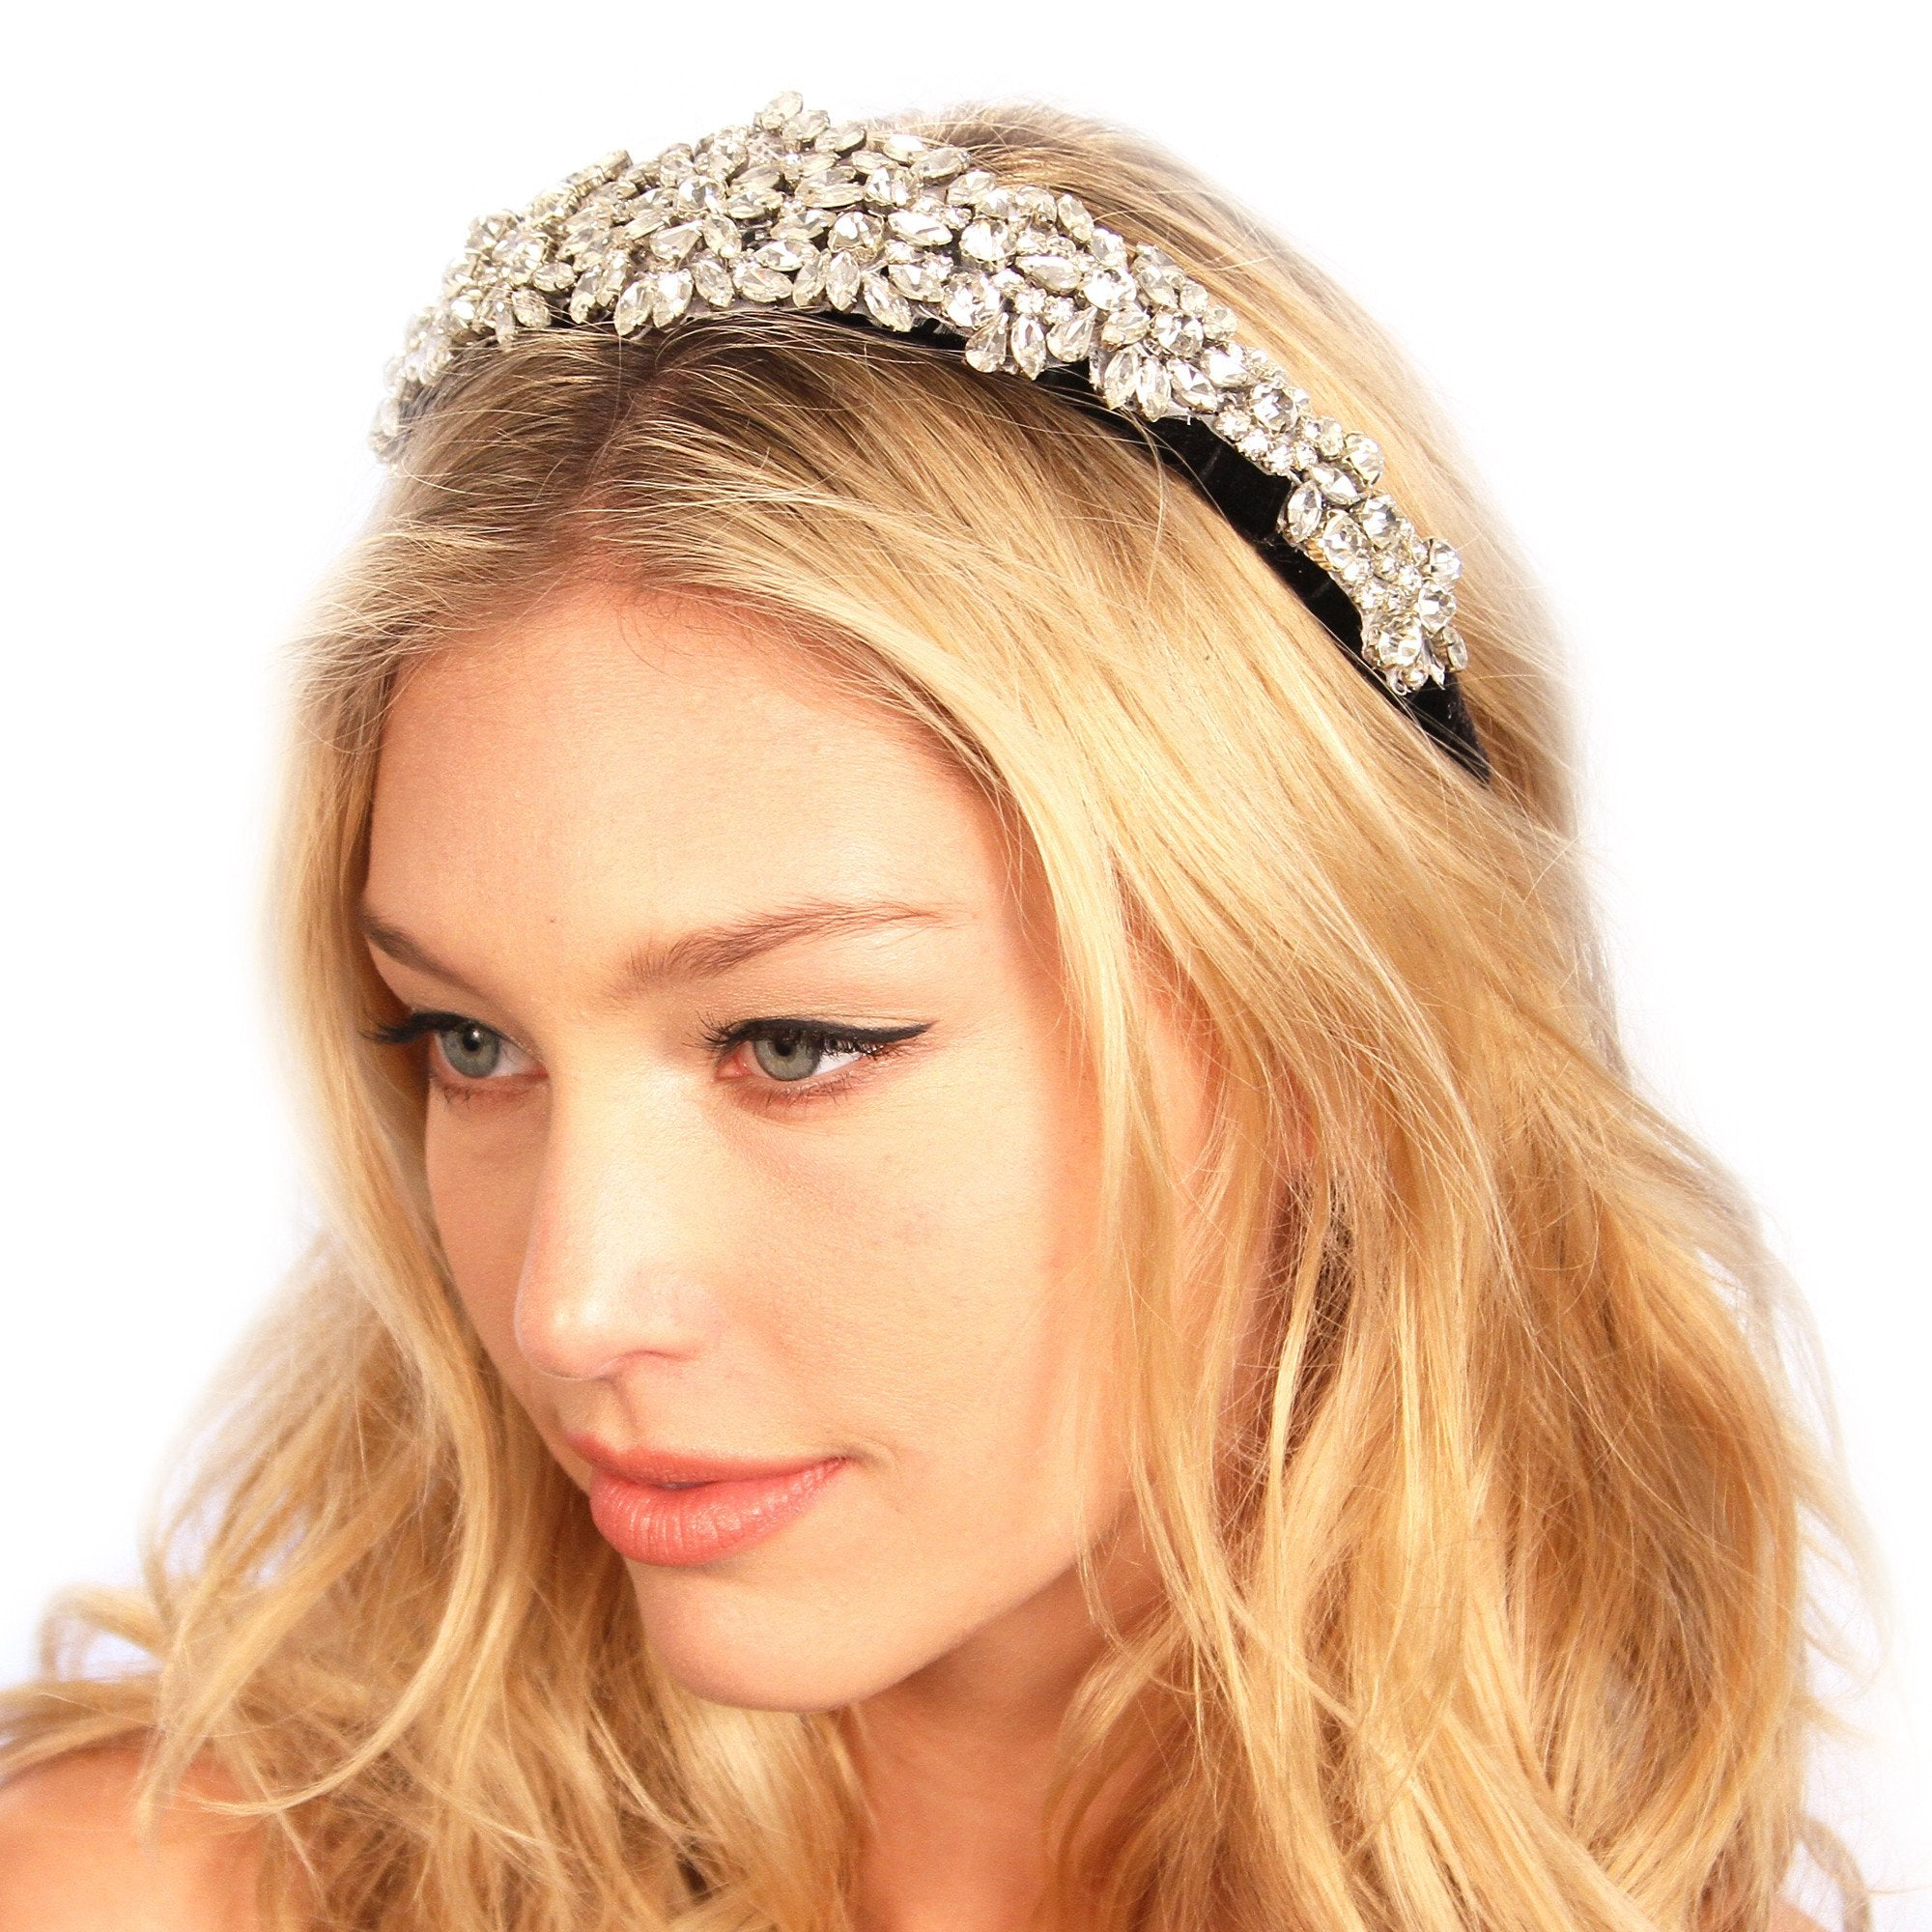 Crusted Crystals Headband - Miraposa